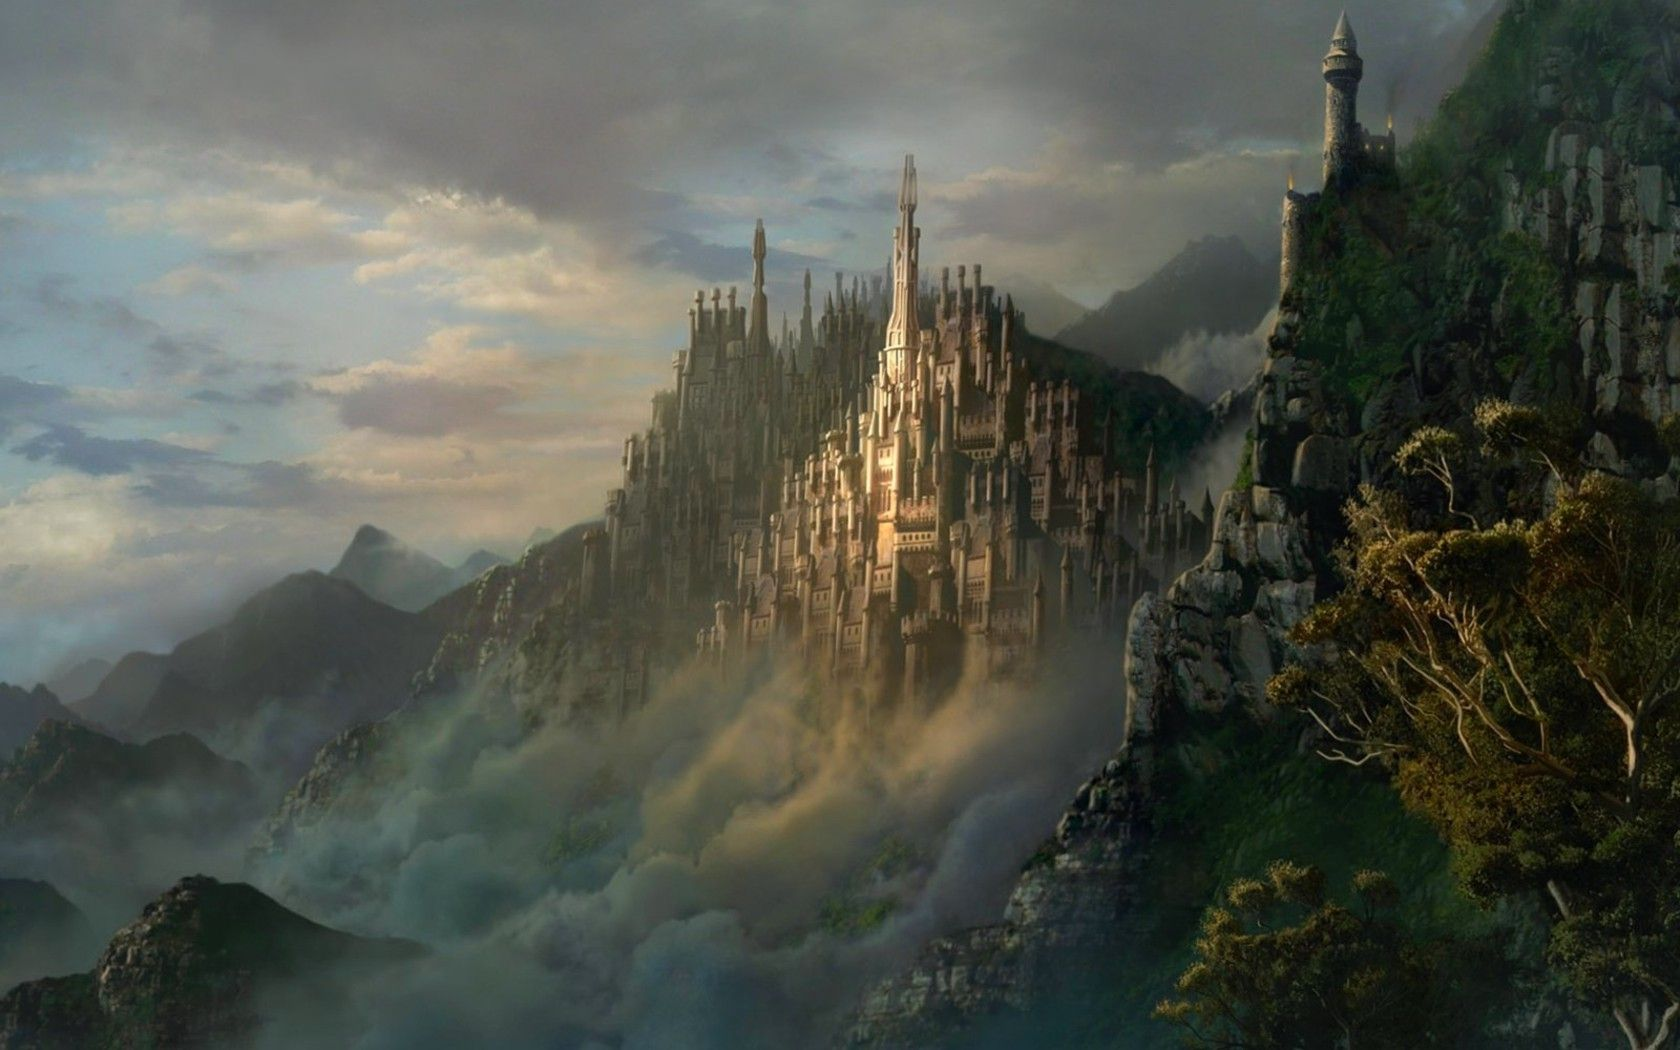 Mountain City Fantastical Places Cities & Towns